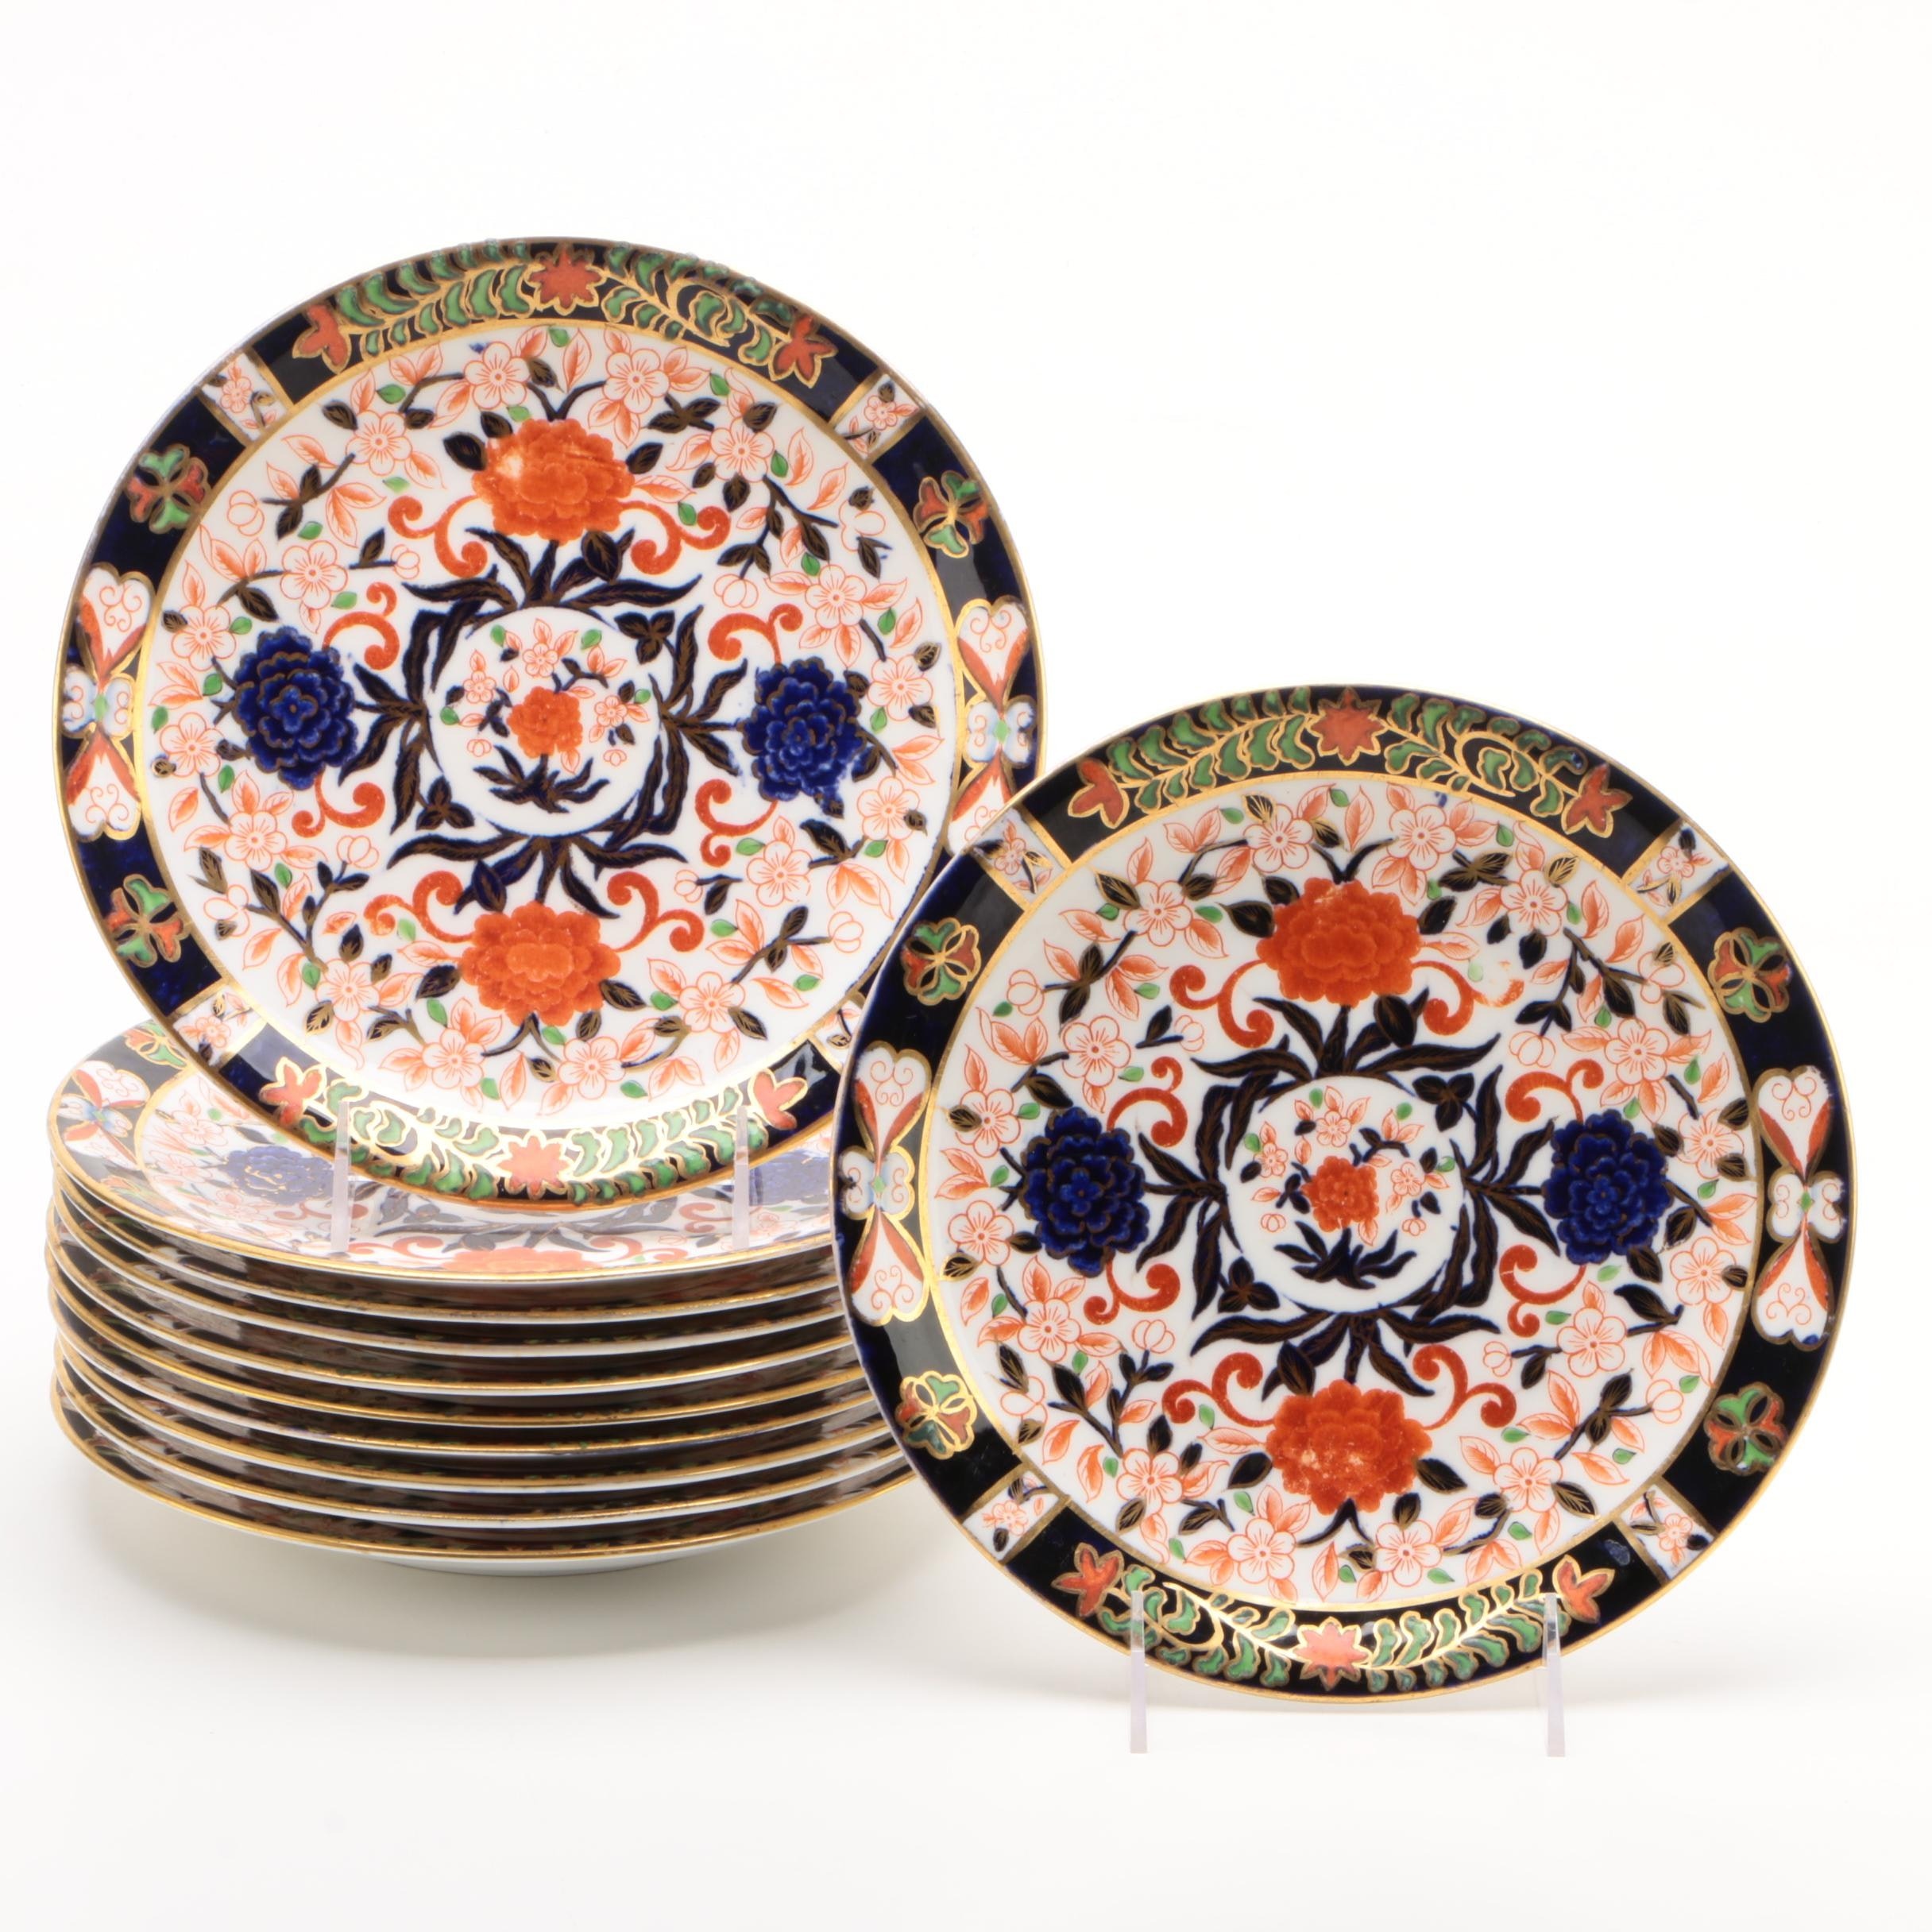 Royal Crown Derby Imari Decorated Plates, Late 19th Century